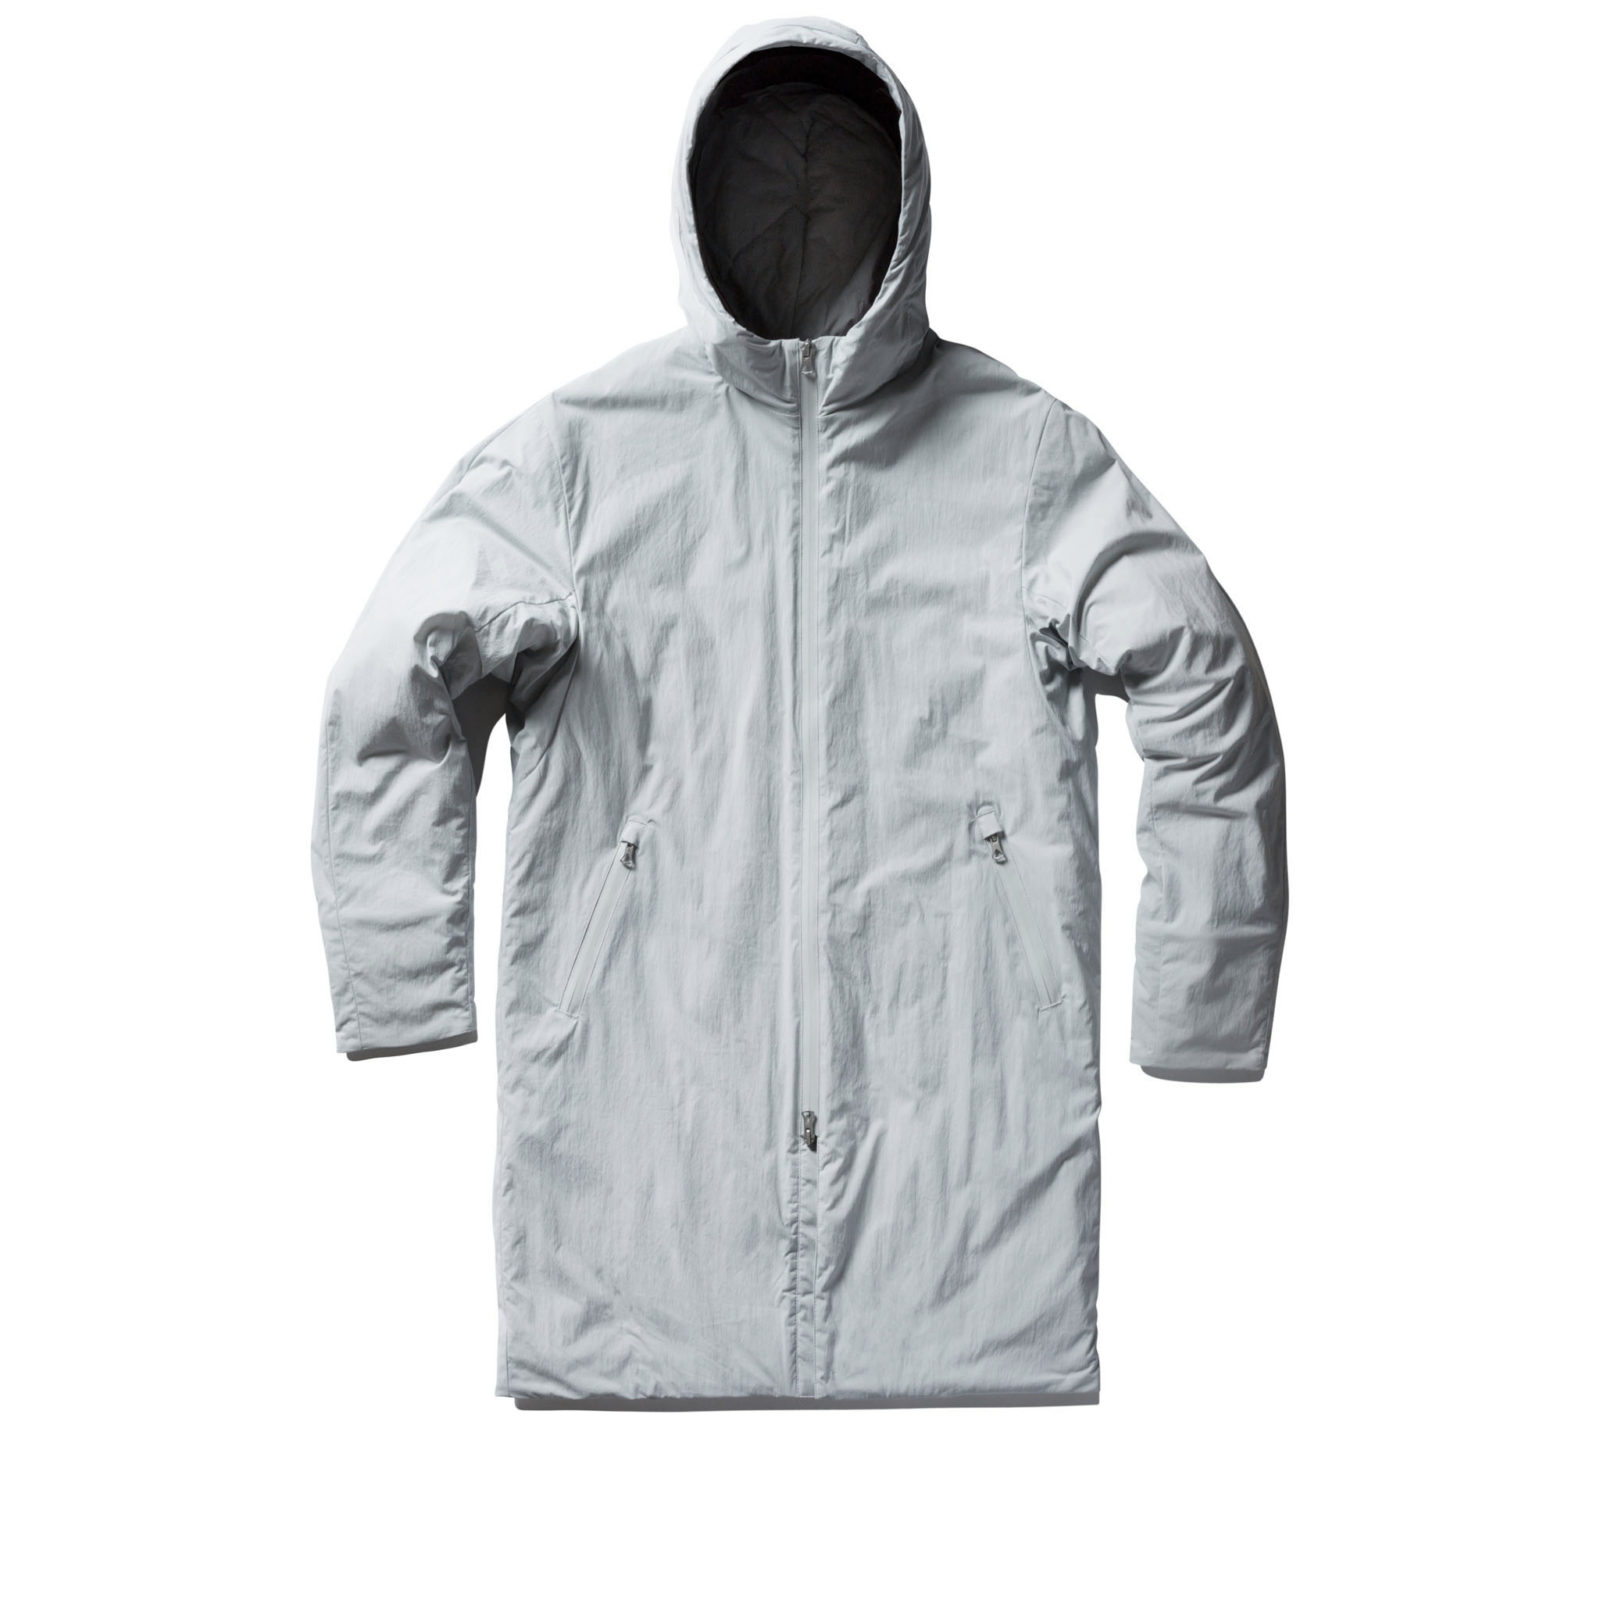 REIGNING CHAMP SEA TO SKY FALL WINTER 2017 INSULATED SIDELINE JACKET